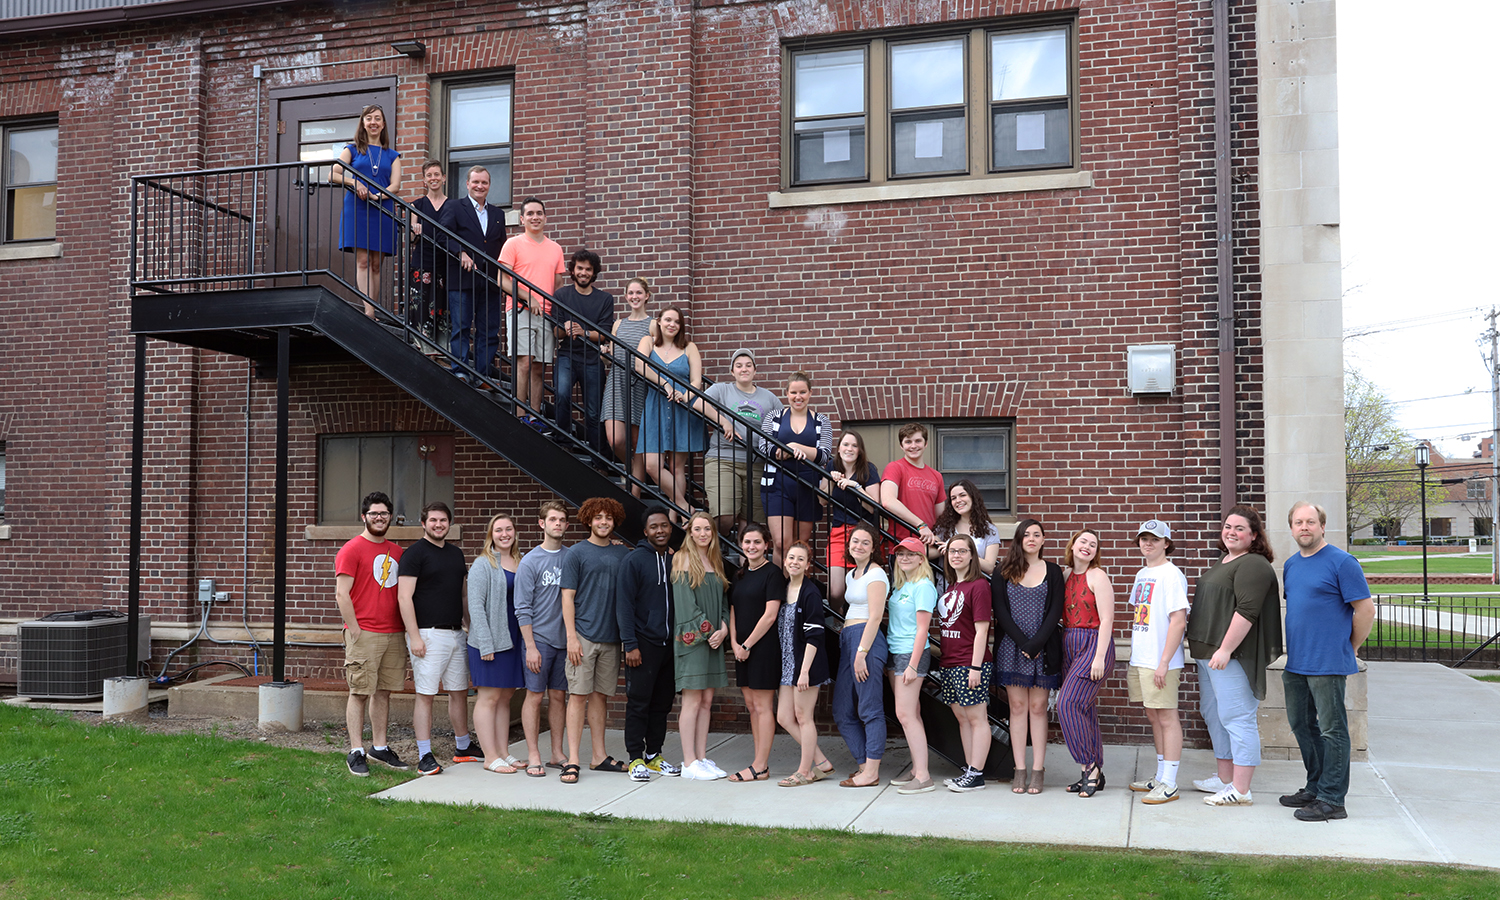 Members of the HWS Theatre Department gather for a group photo behind Williams Hall.